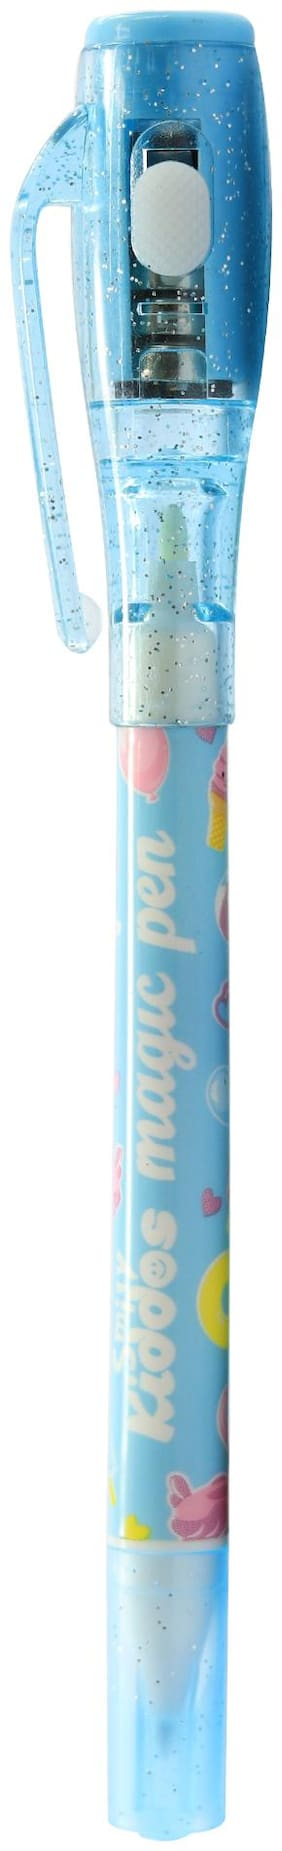 Smily Kiddos  fantasy duo spy marker pen (Light Blue)